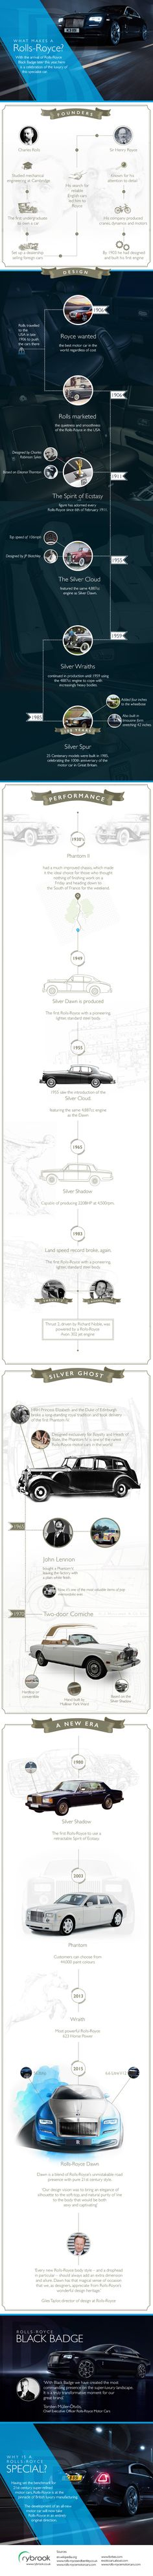 What Makes A Rolls-Royce? #Infographic #Transportation #Cars